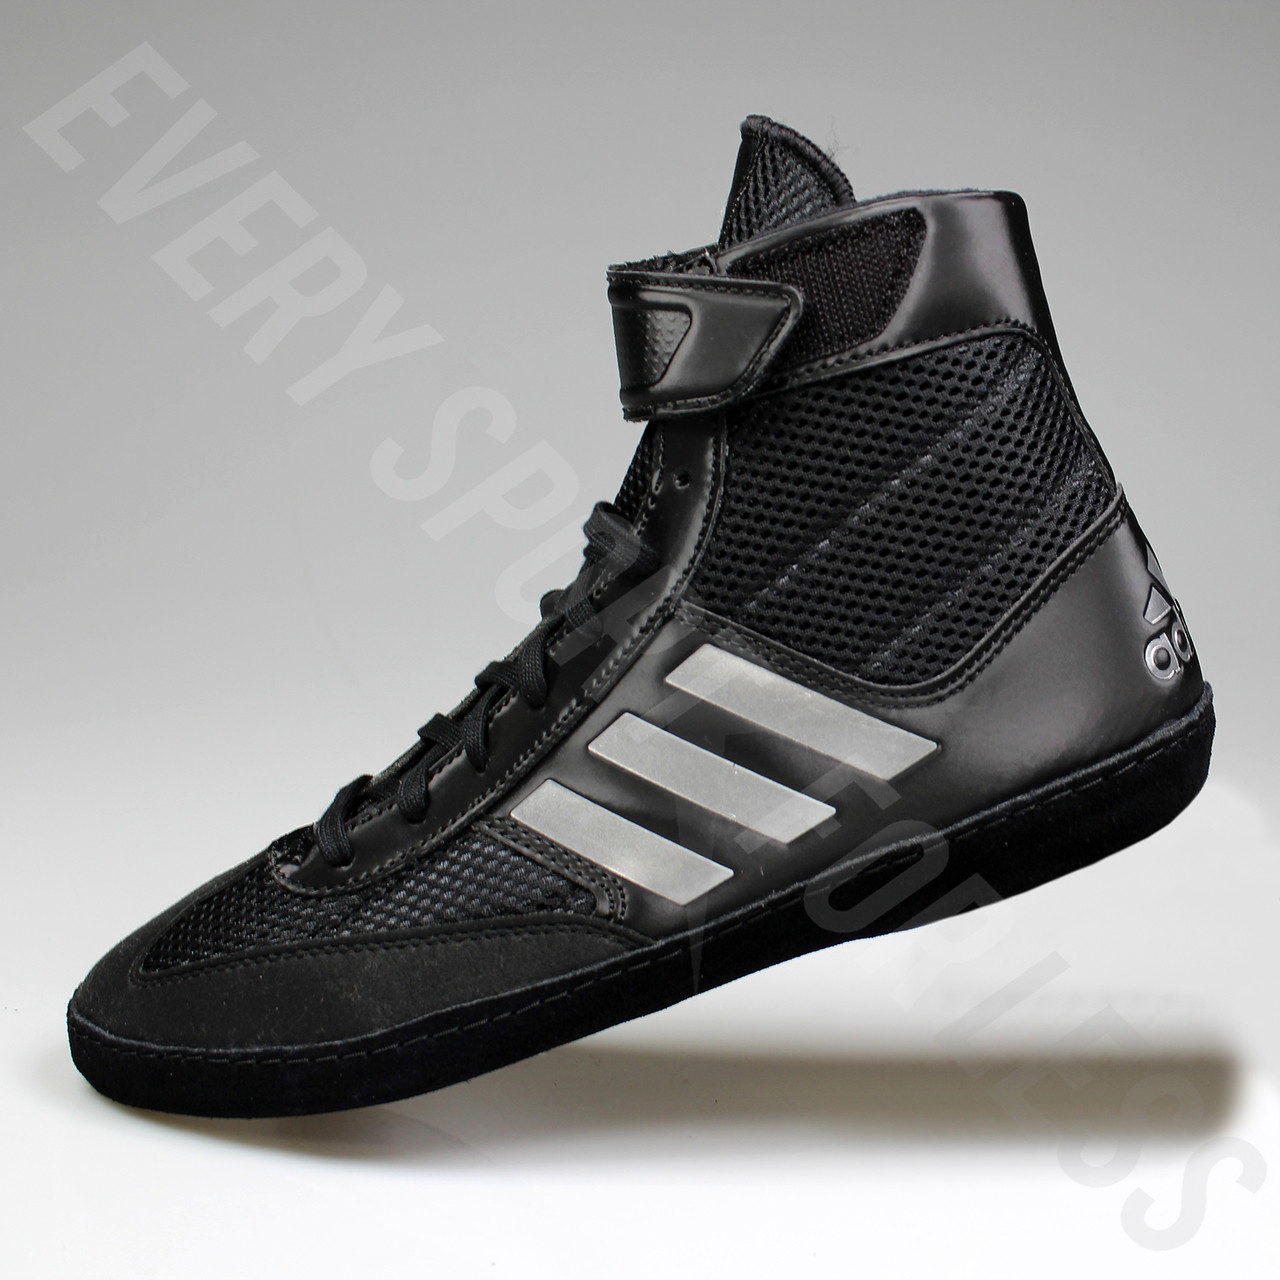 f7818372b95c75 ... Adidas Combat Speed 5 Mens Wrestling Shoes BA8007 - Black   Silver ...